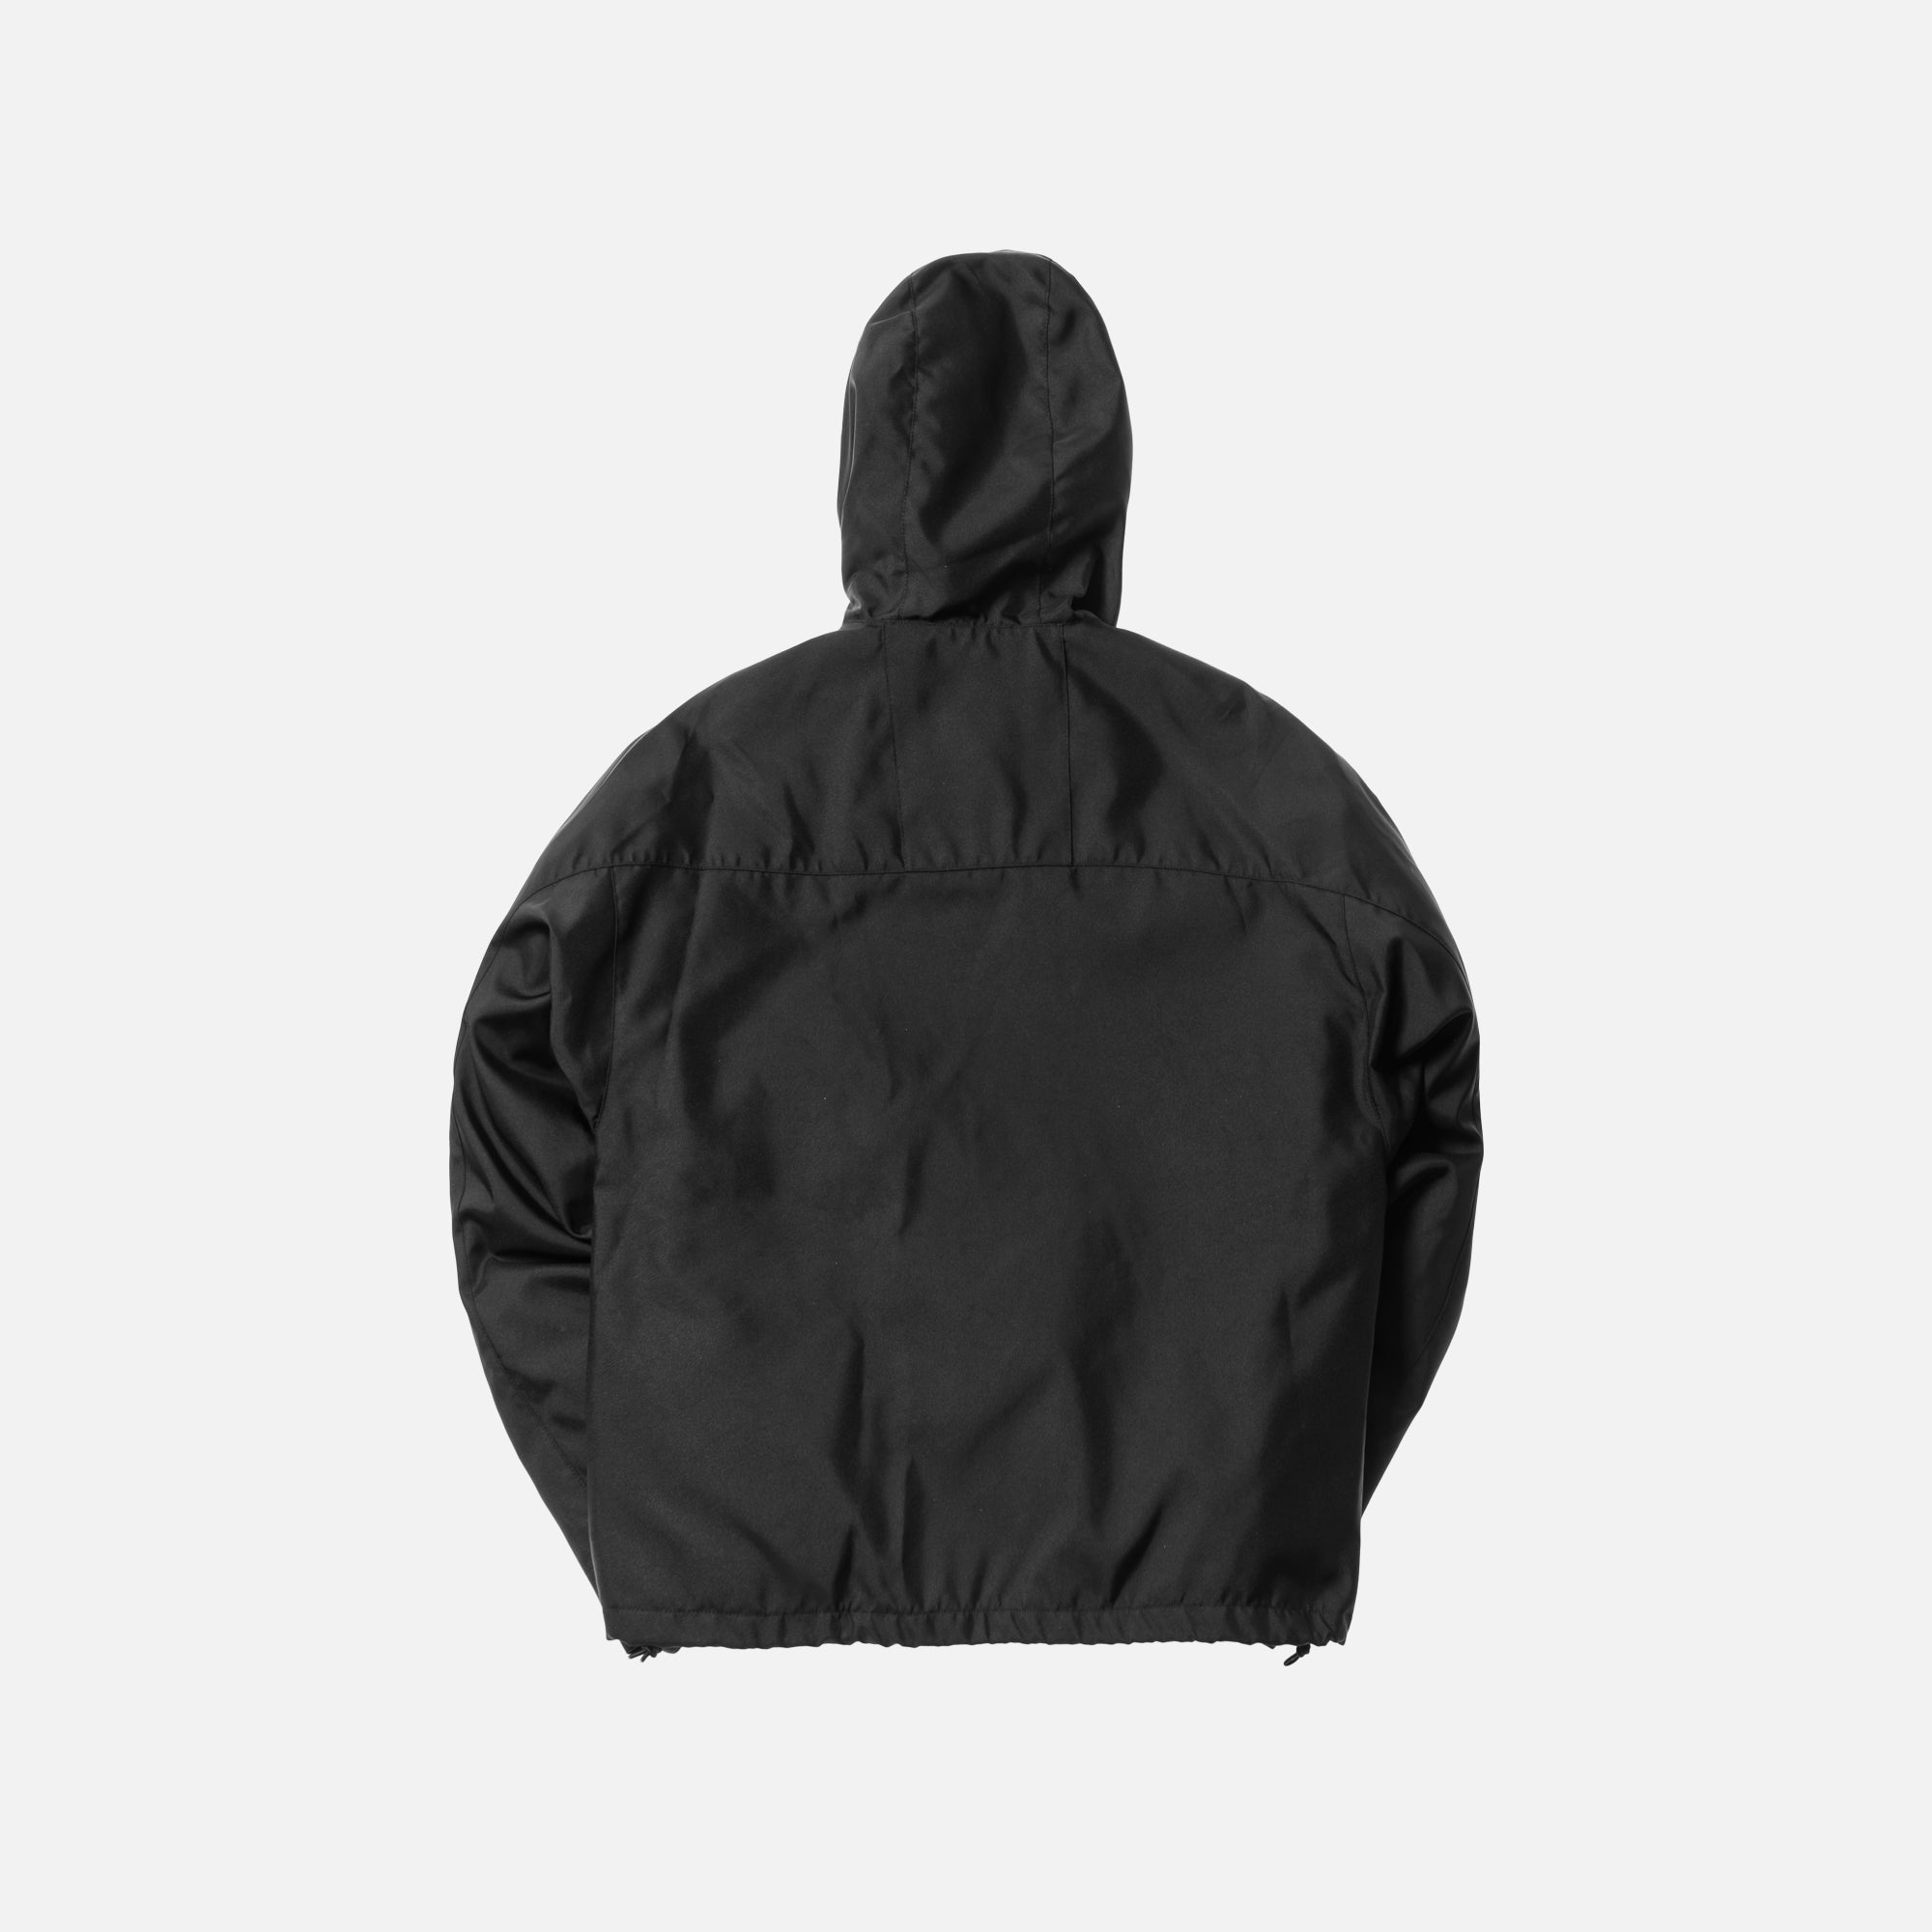 Yeezy Season 5 Parka Pockets Nylon Jacket - Black